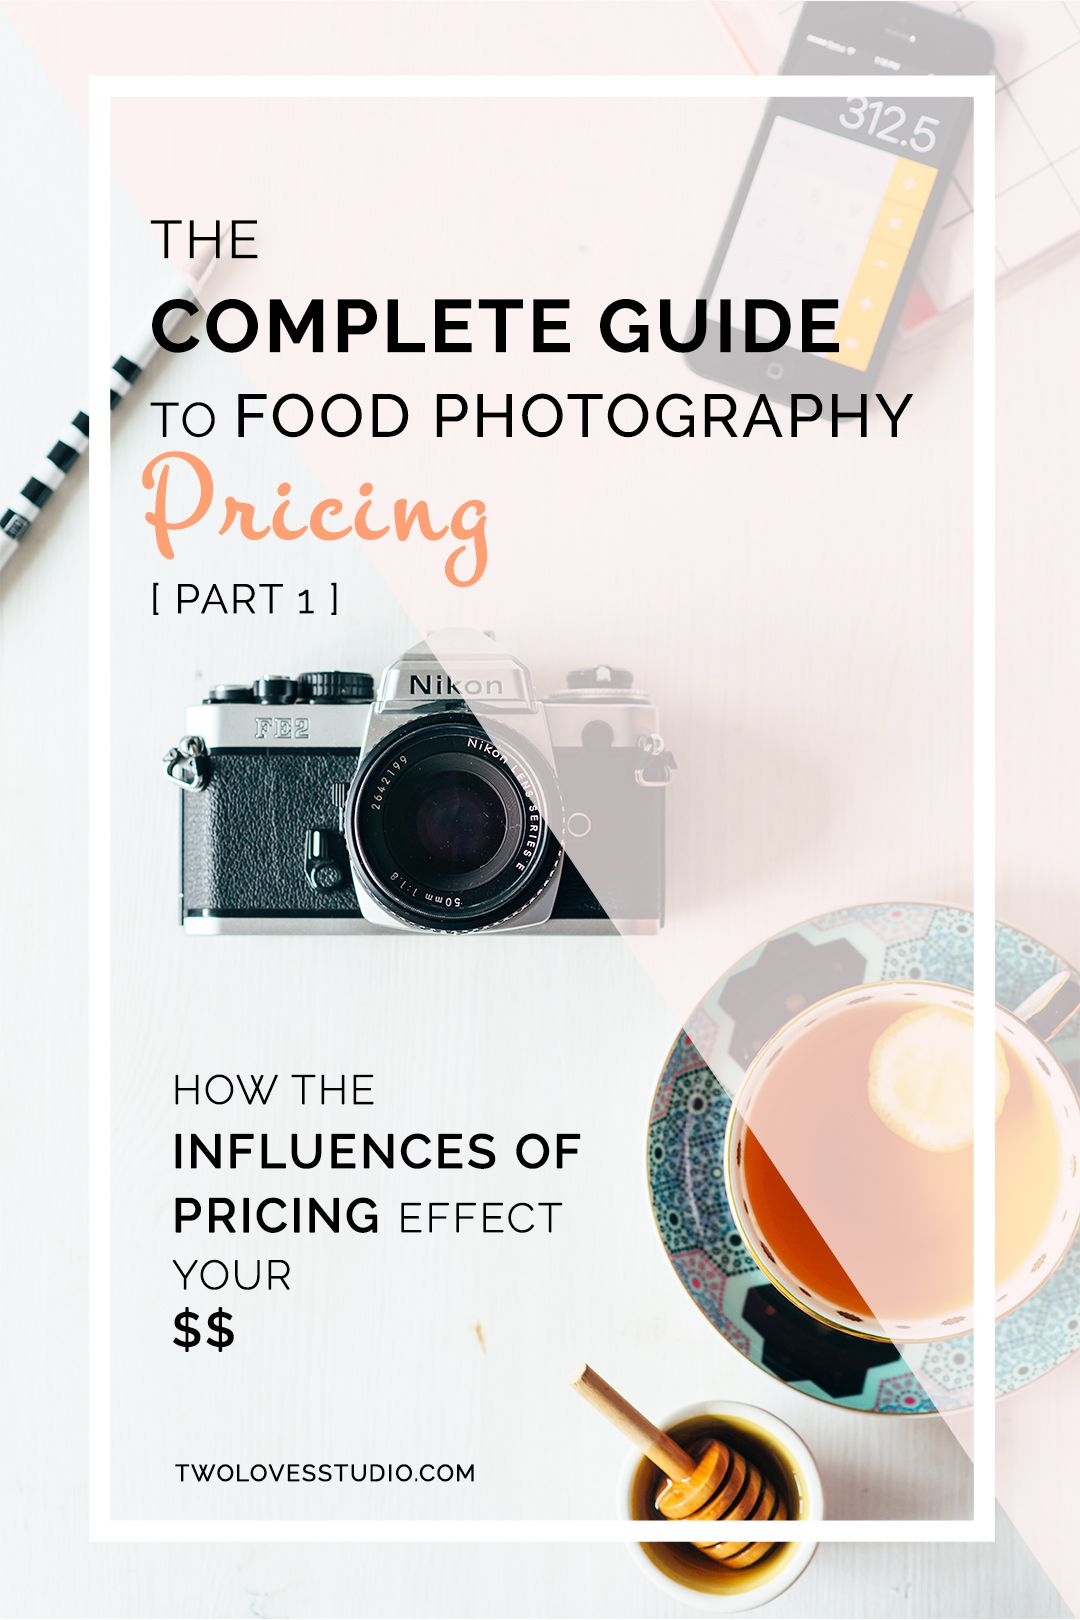 Poster design freelance price - Complete Guide To Food Photography Pricing Part 1